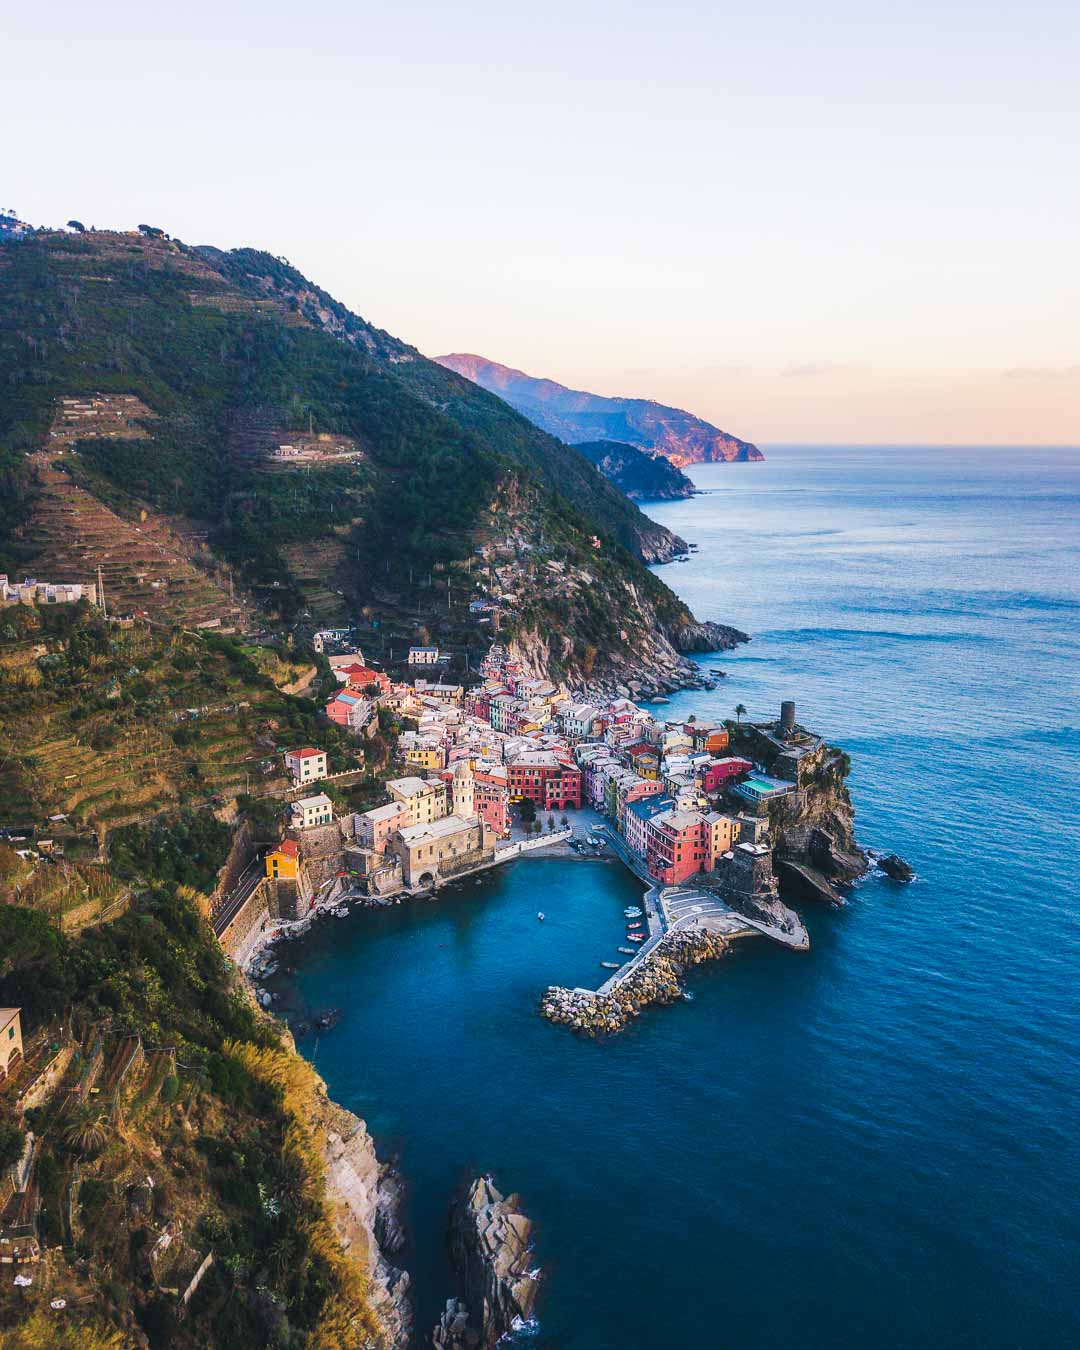 vernazza in cinque terre from kevmrc